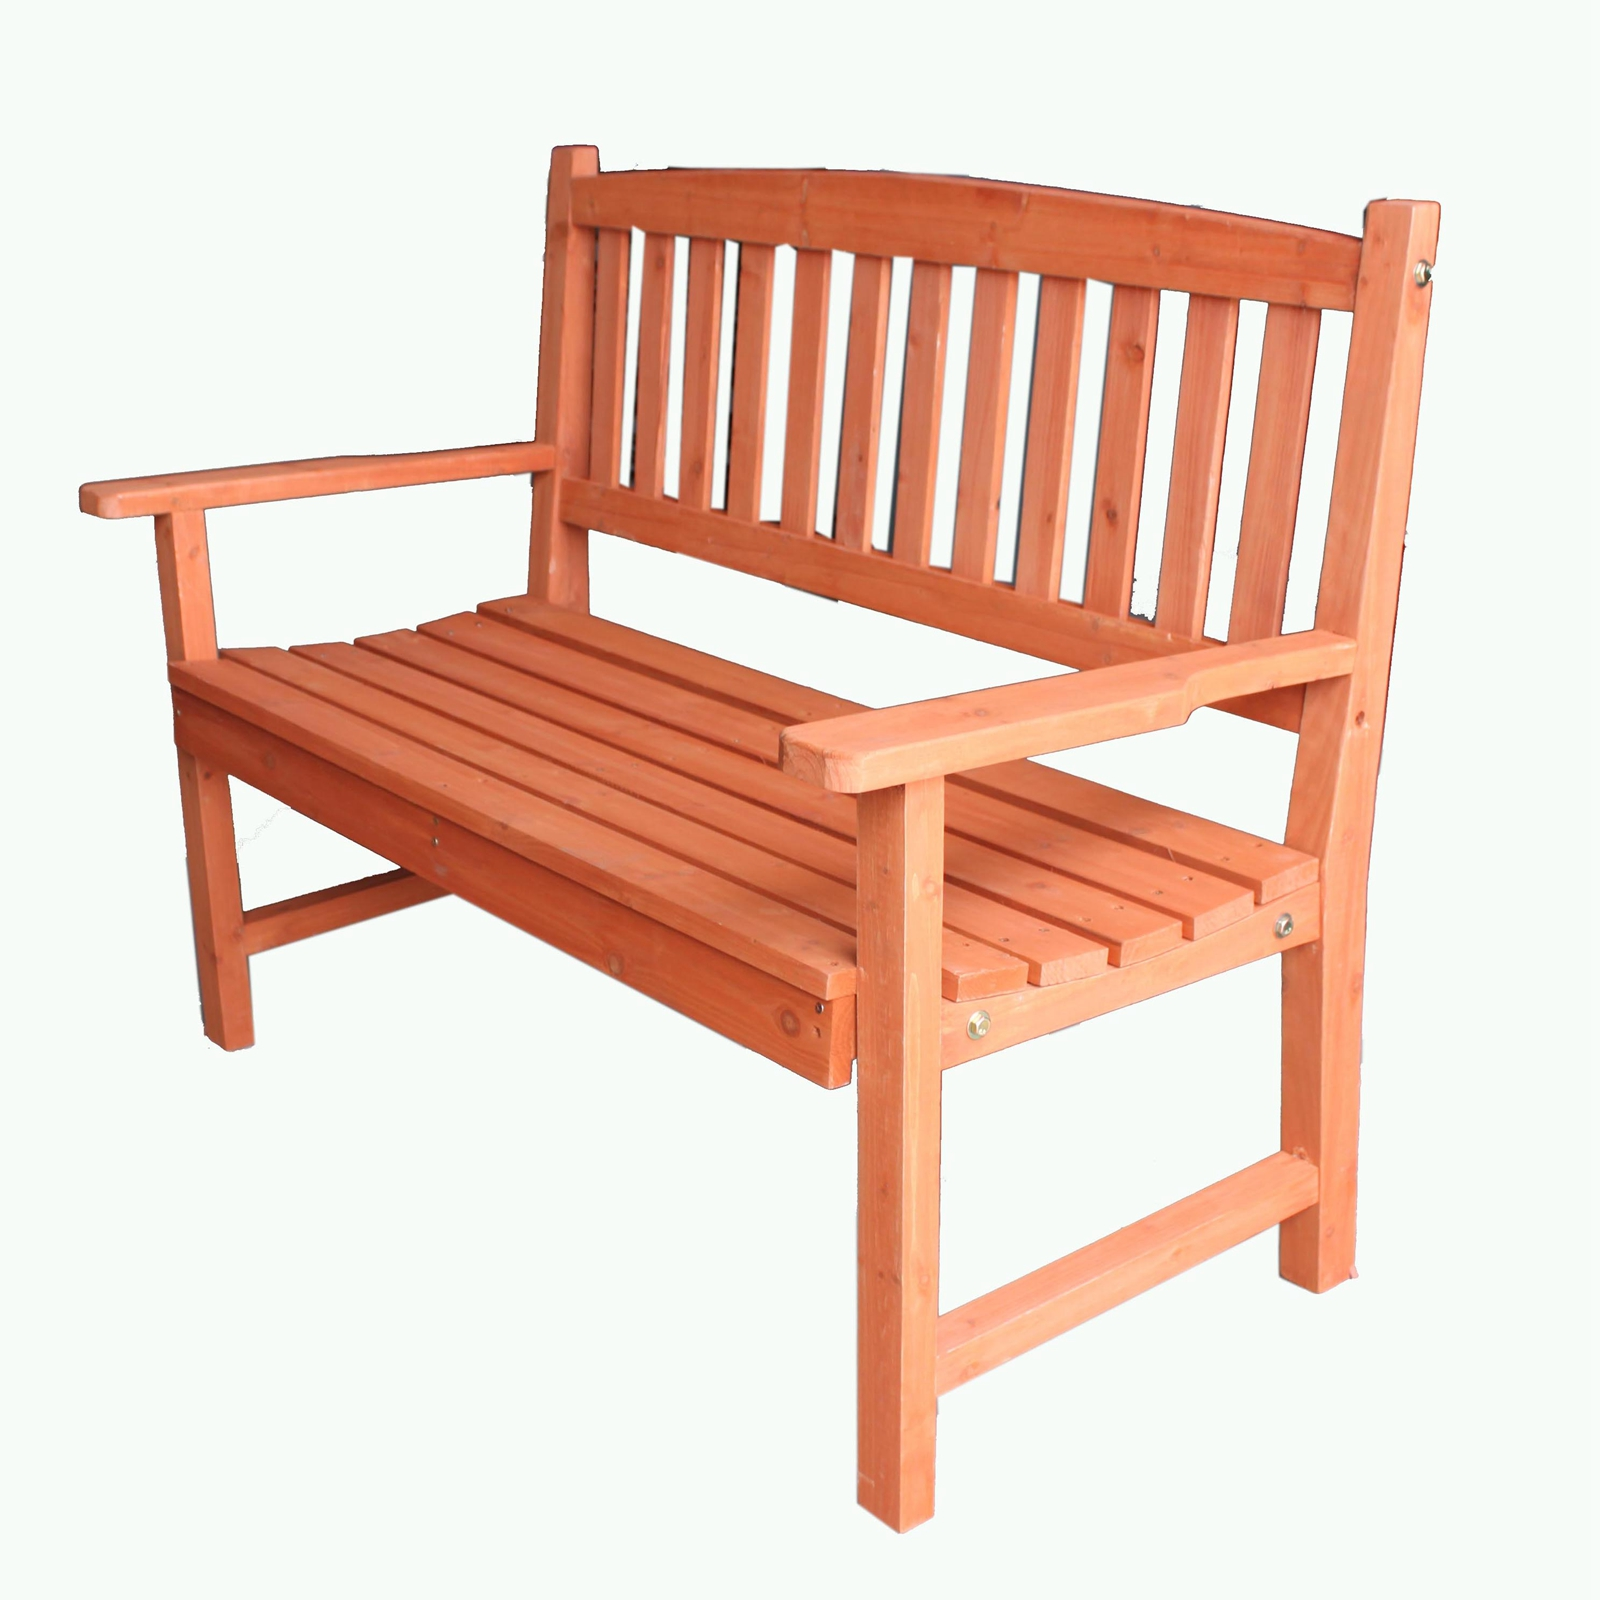 FoxHunter 2 3 Seater Wooden Bench Chair Table Outdoor furniture